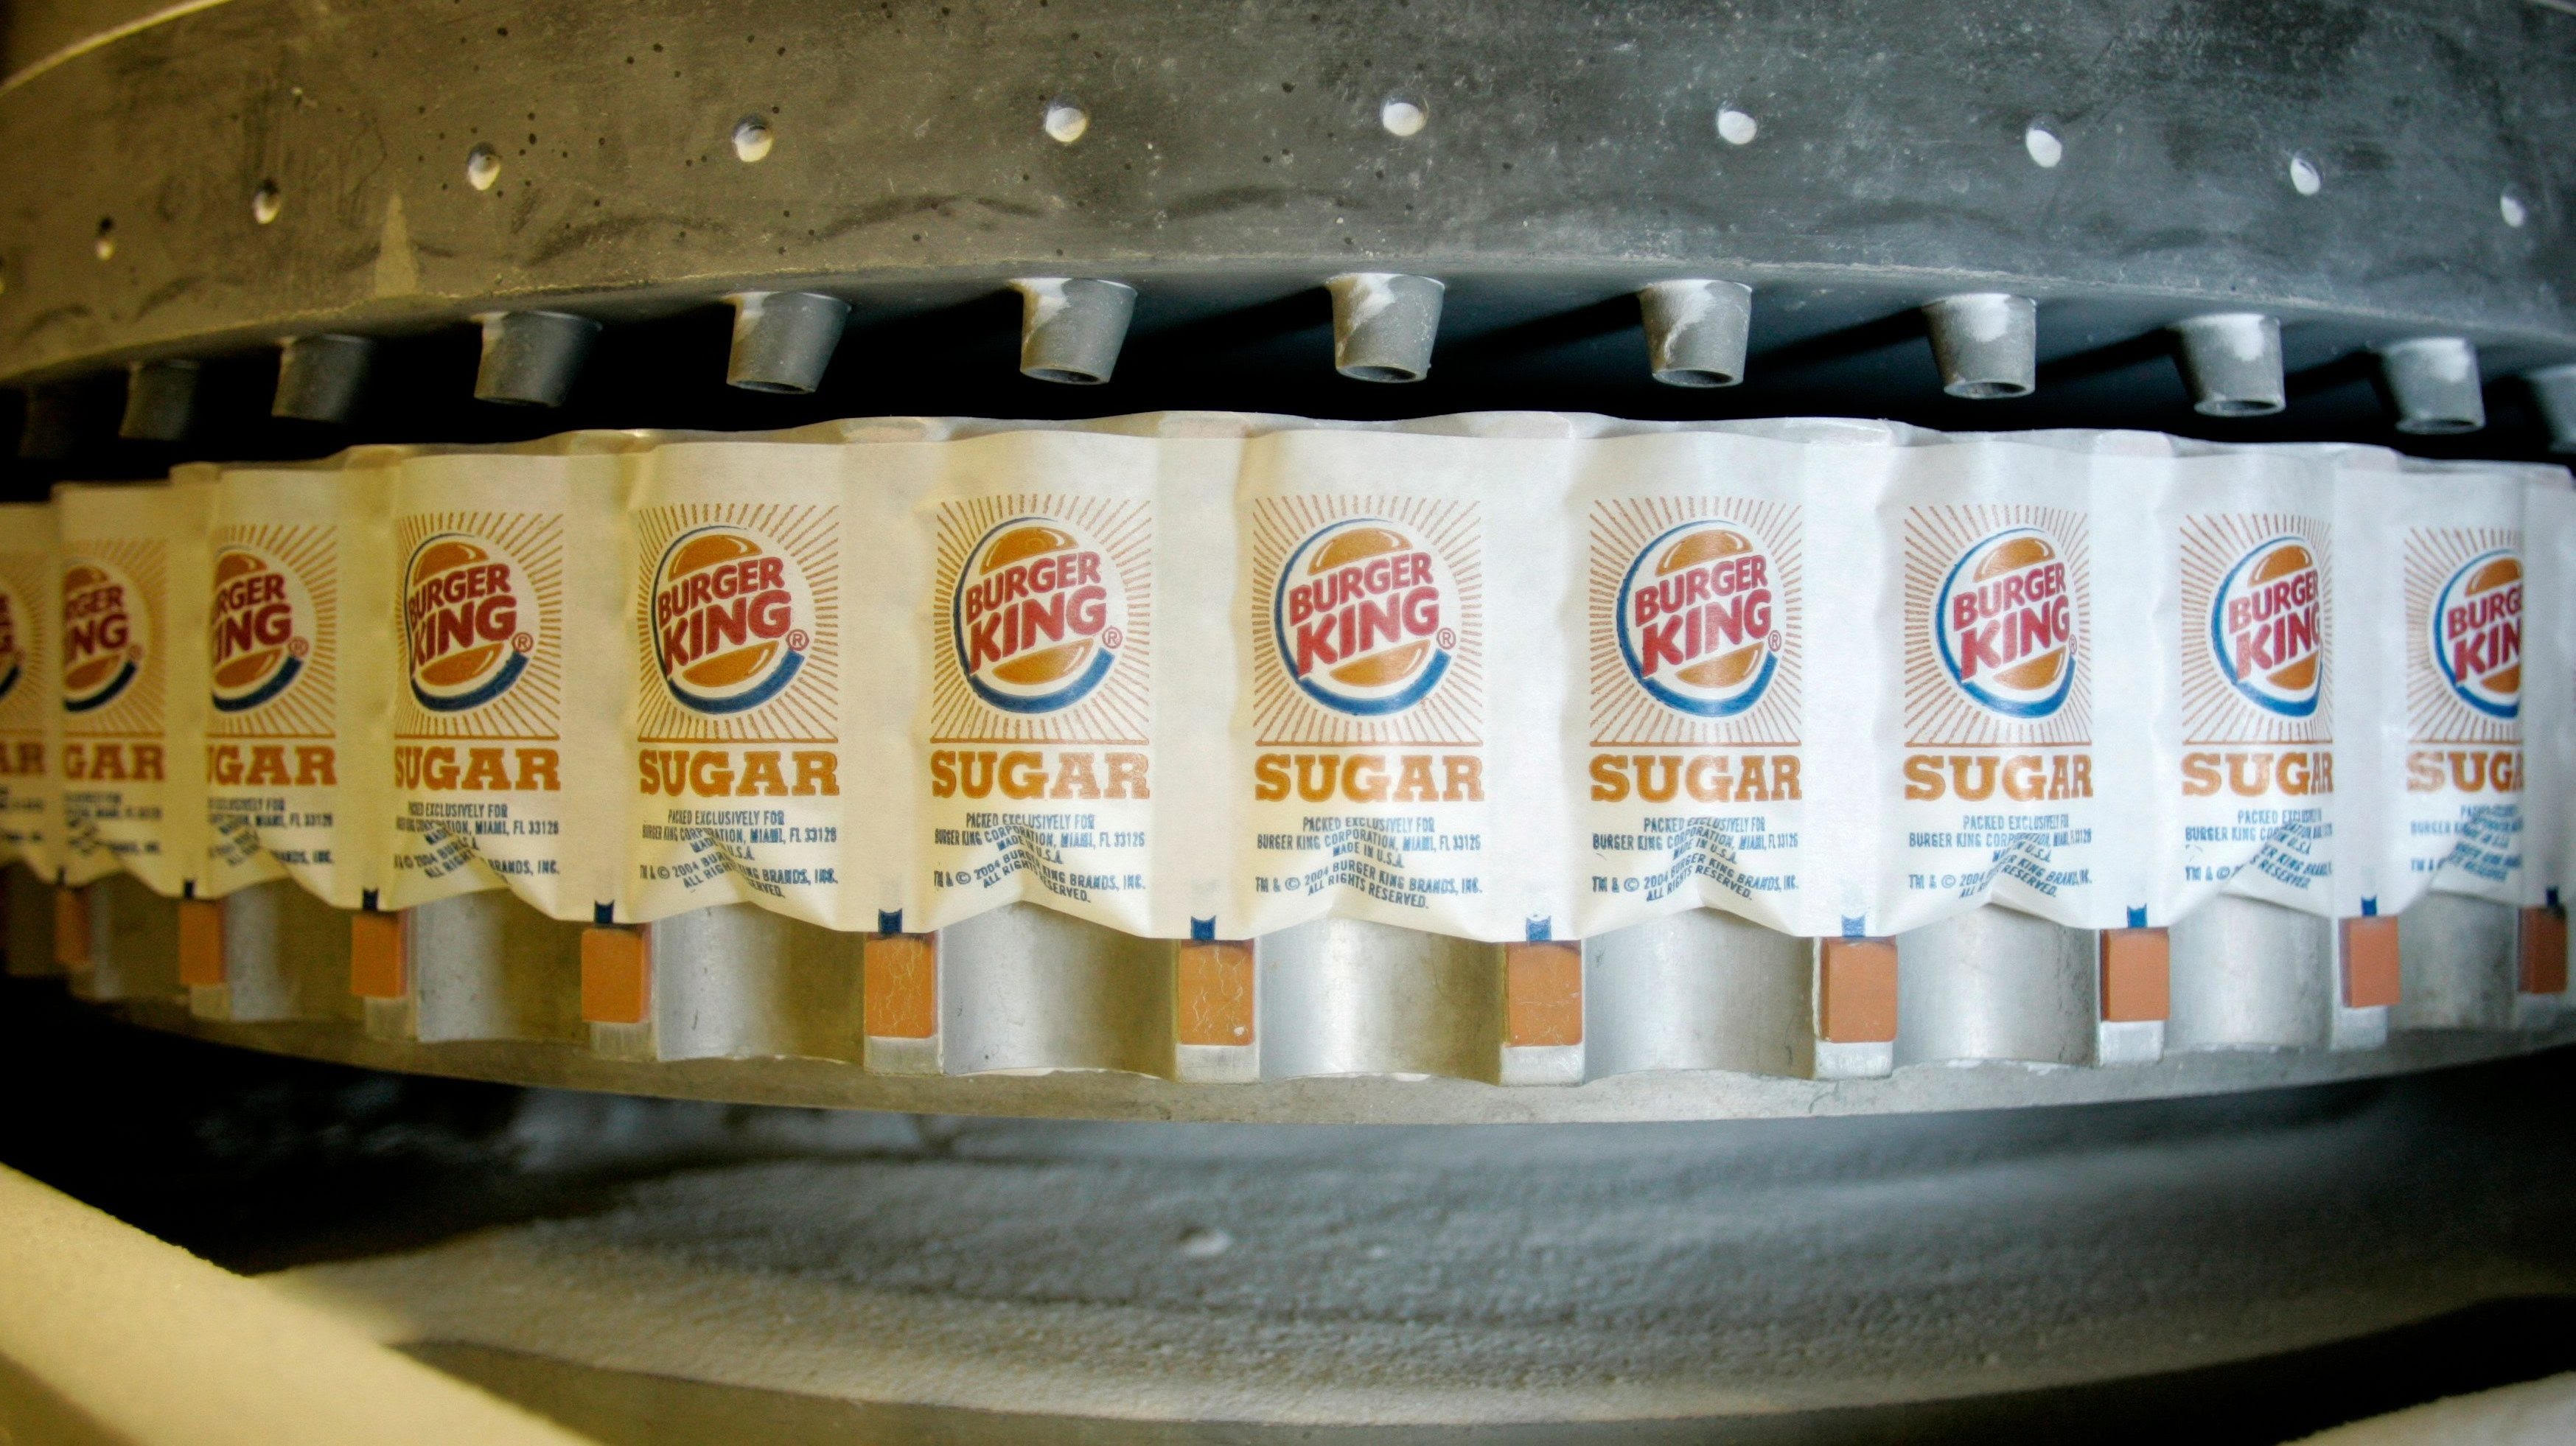 Bags of Florida Crystals cane sugar are filled with the Burger King label at the Florida Crystals Corp. sugar mill, refinery and power plant in Okeelanta, Florida, on July 9, 2008.